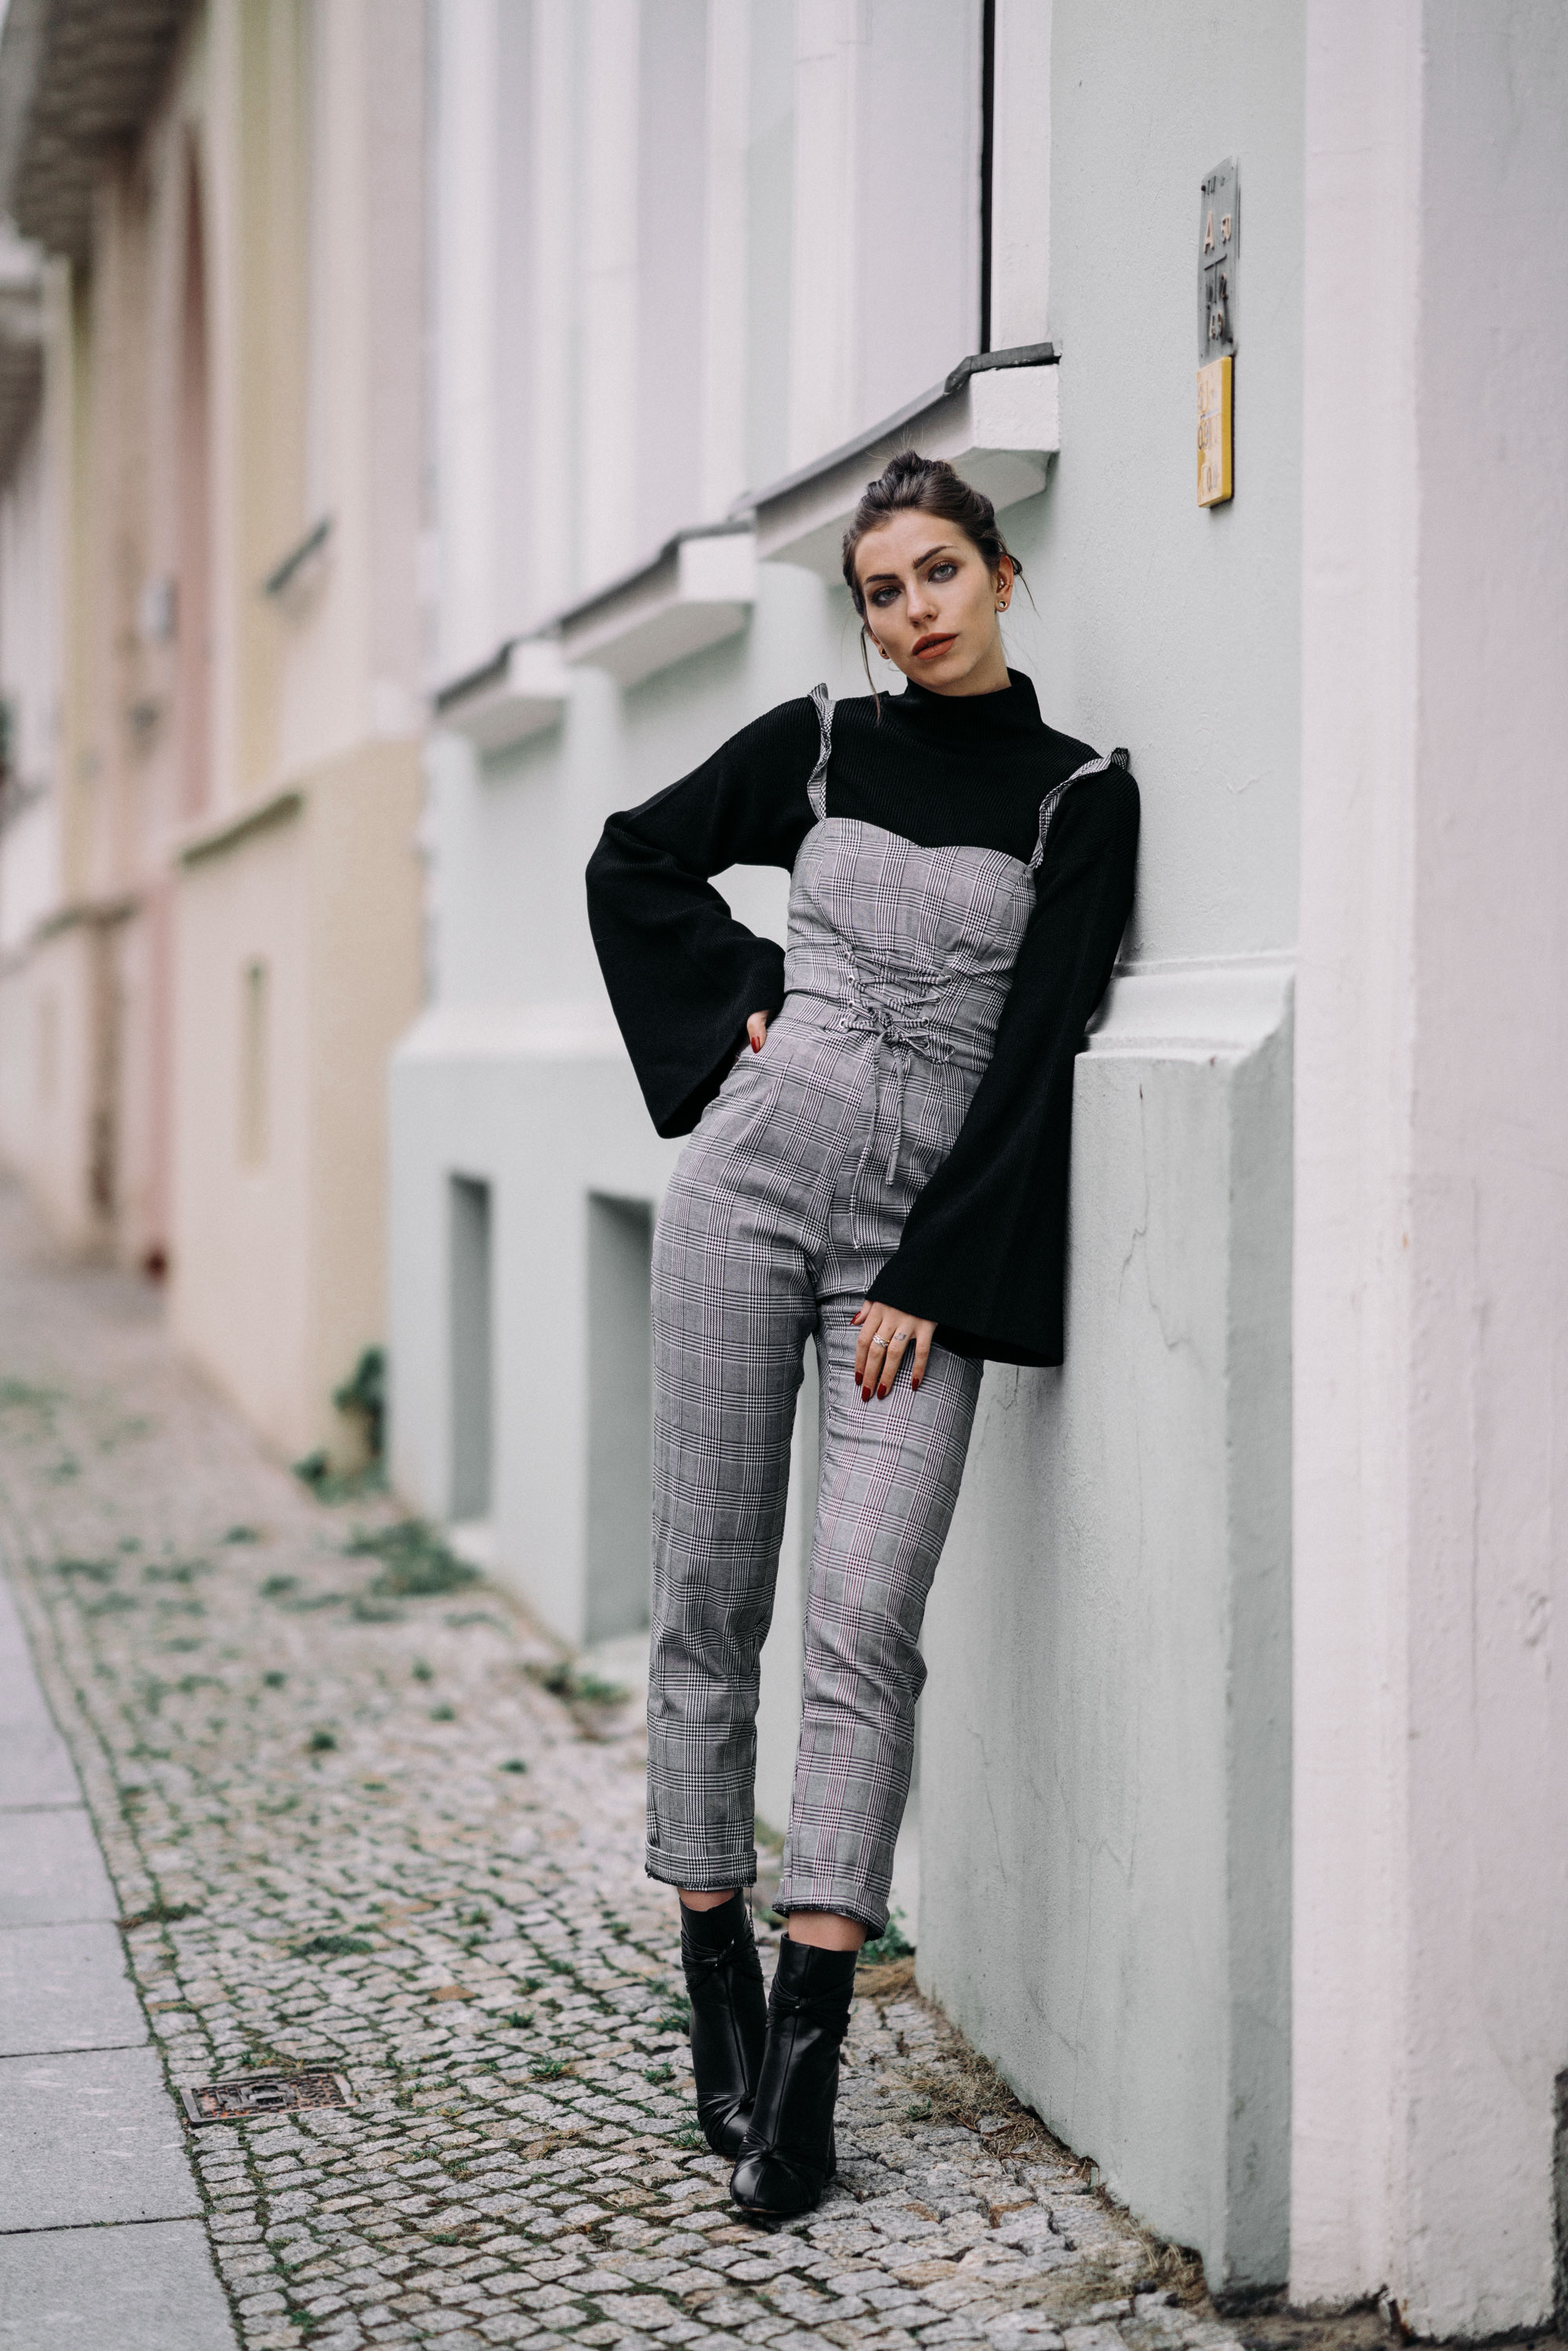 Zalando Style of the Day | Masha Sedgwick | Street Style | Fashion | brands: Topshop, Ivy Revel, Vans, Selected Femme, The Kooples, Holzweiler | Berlin | Street Wear | daily, casual, effortless, easy, sexy, sporty, office, chic, tomboy, relaxed, cool | weekly update | 2018